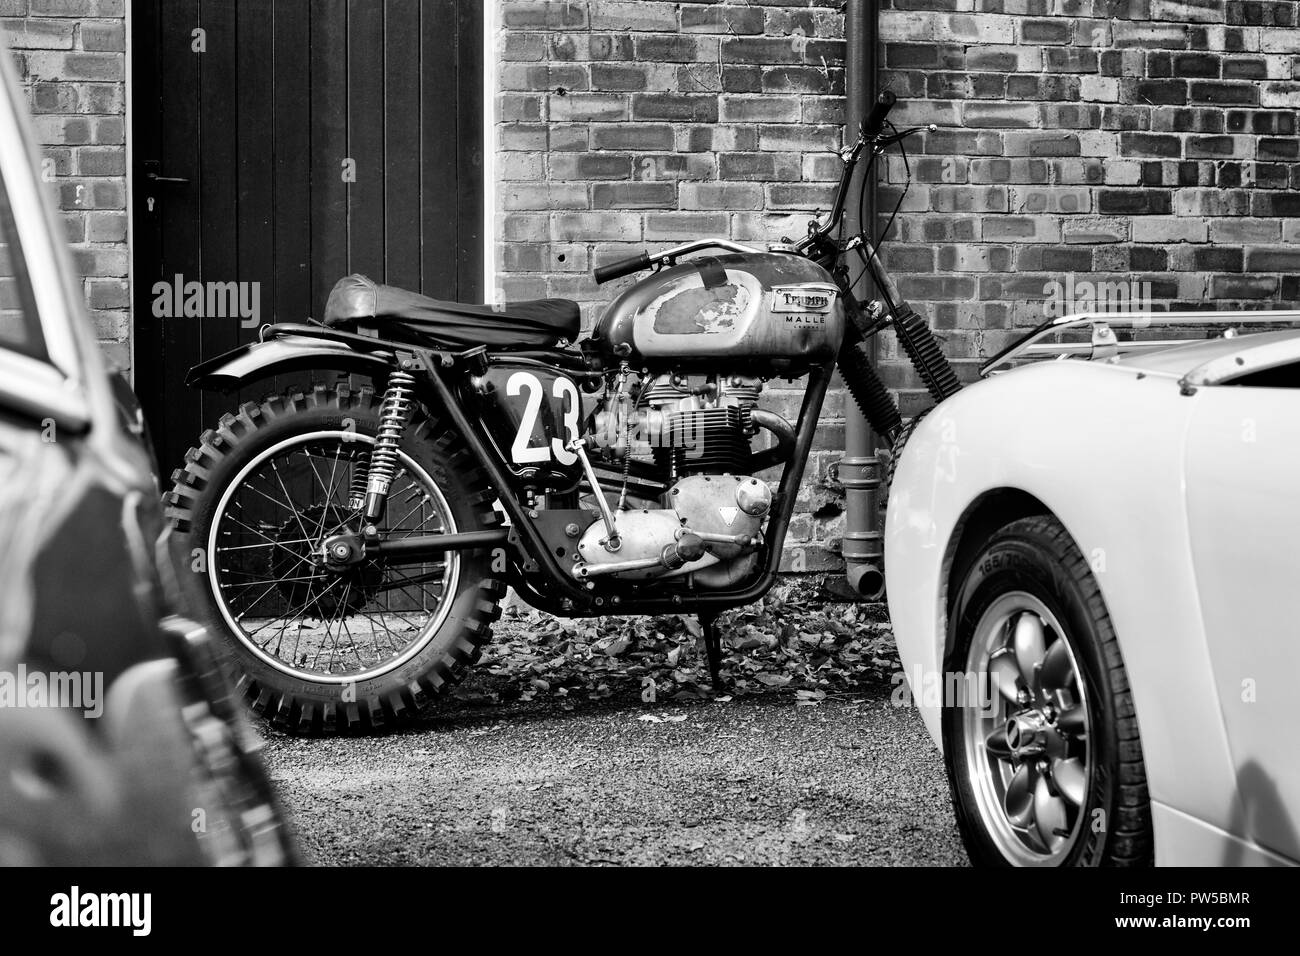 Triumph motorcycle at the autumn sunday scramble event at bicester heritage centre oxfordshire england black and white